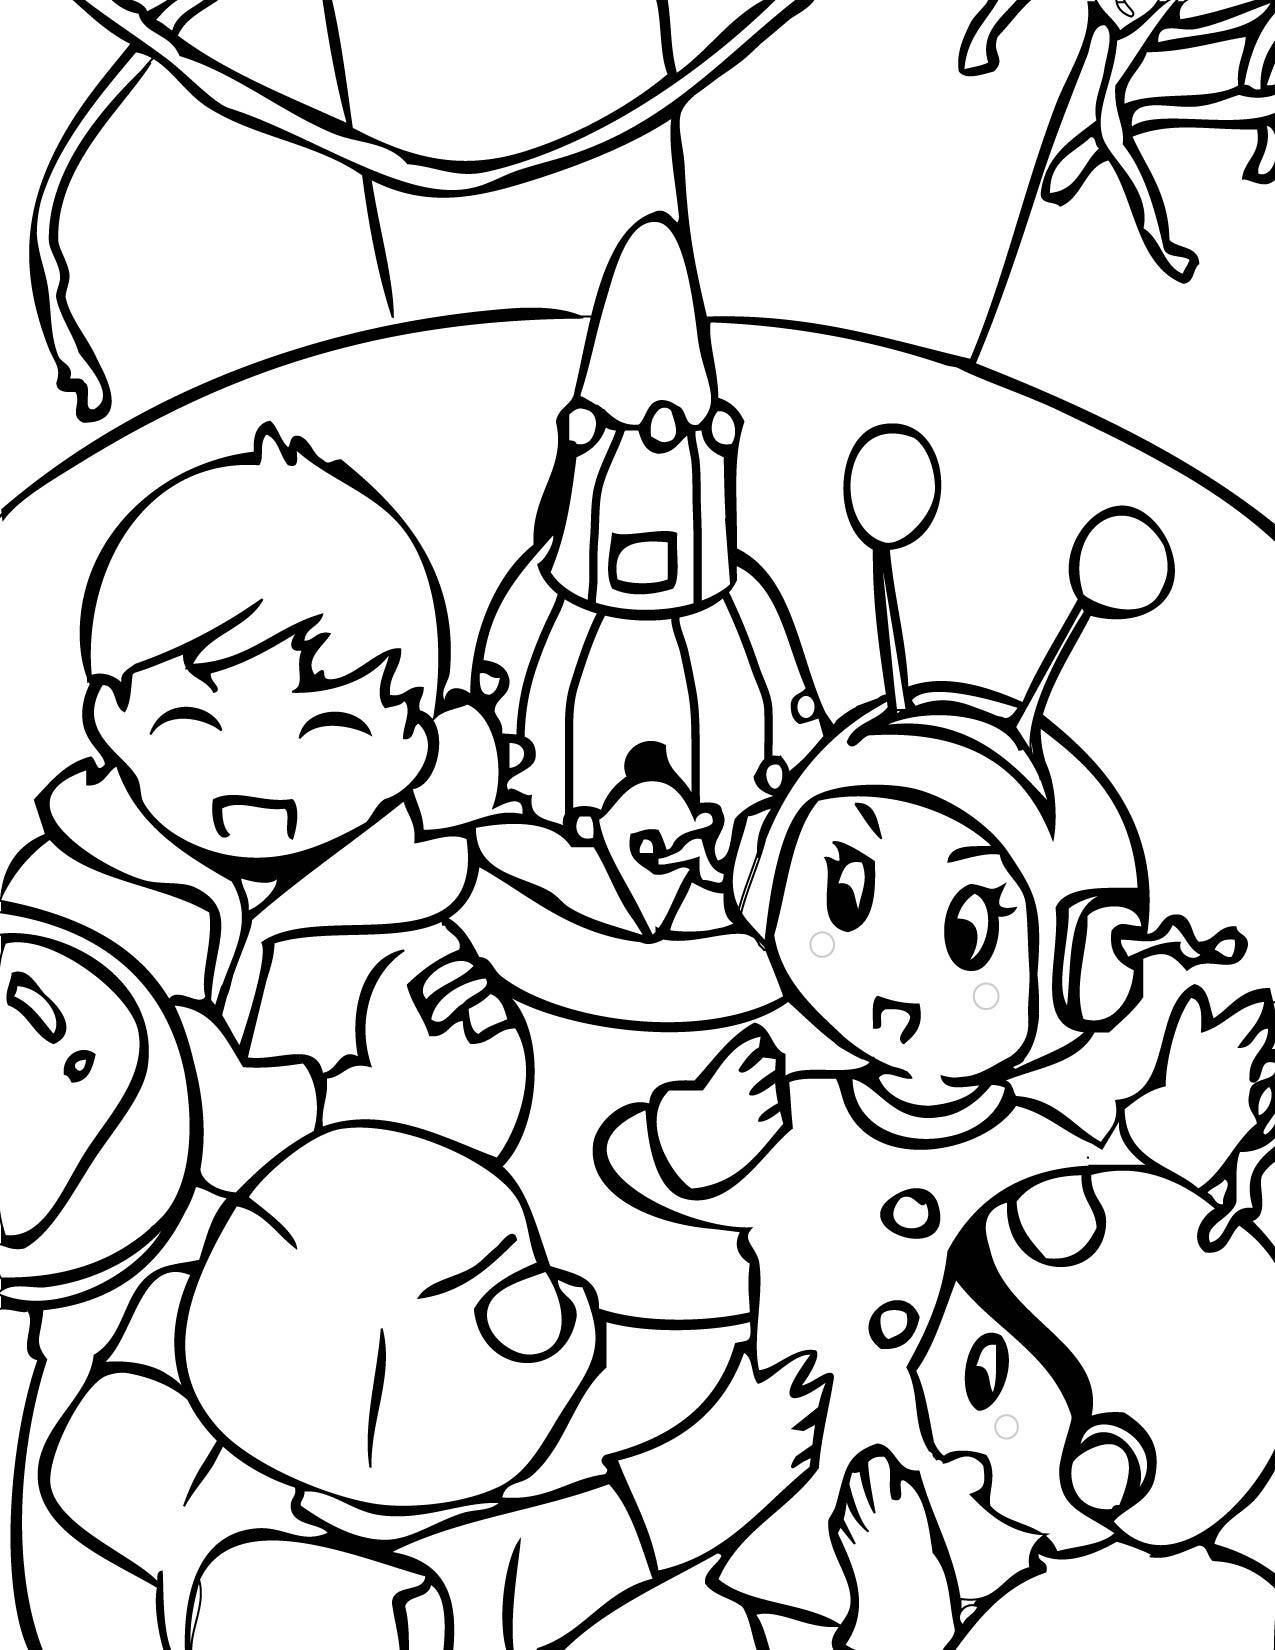 Space coloring pages to download and print for free